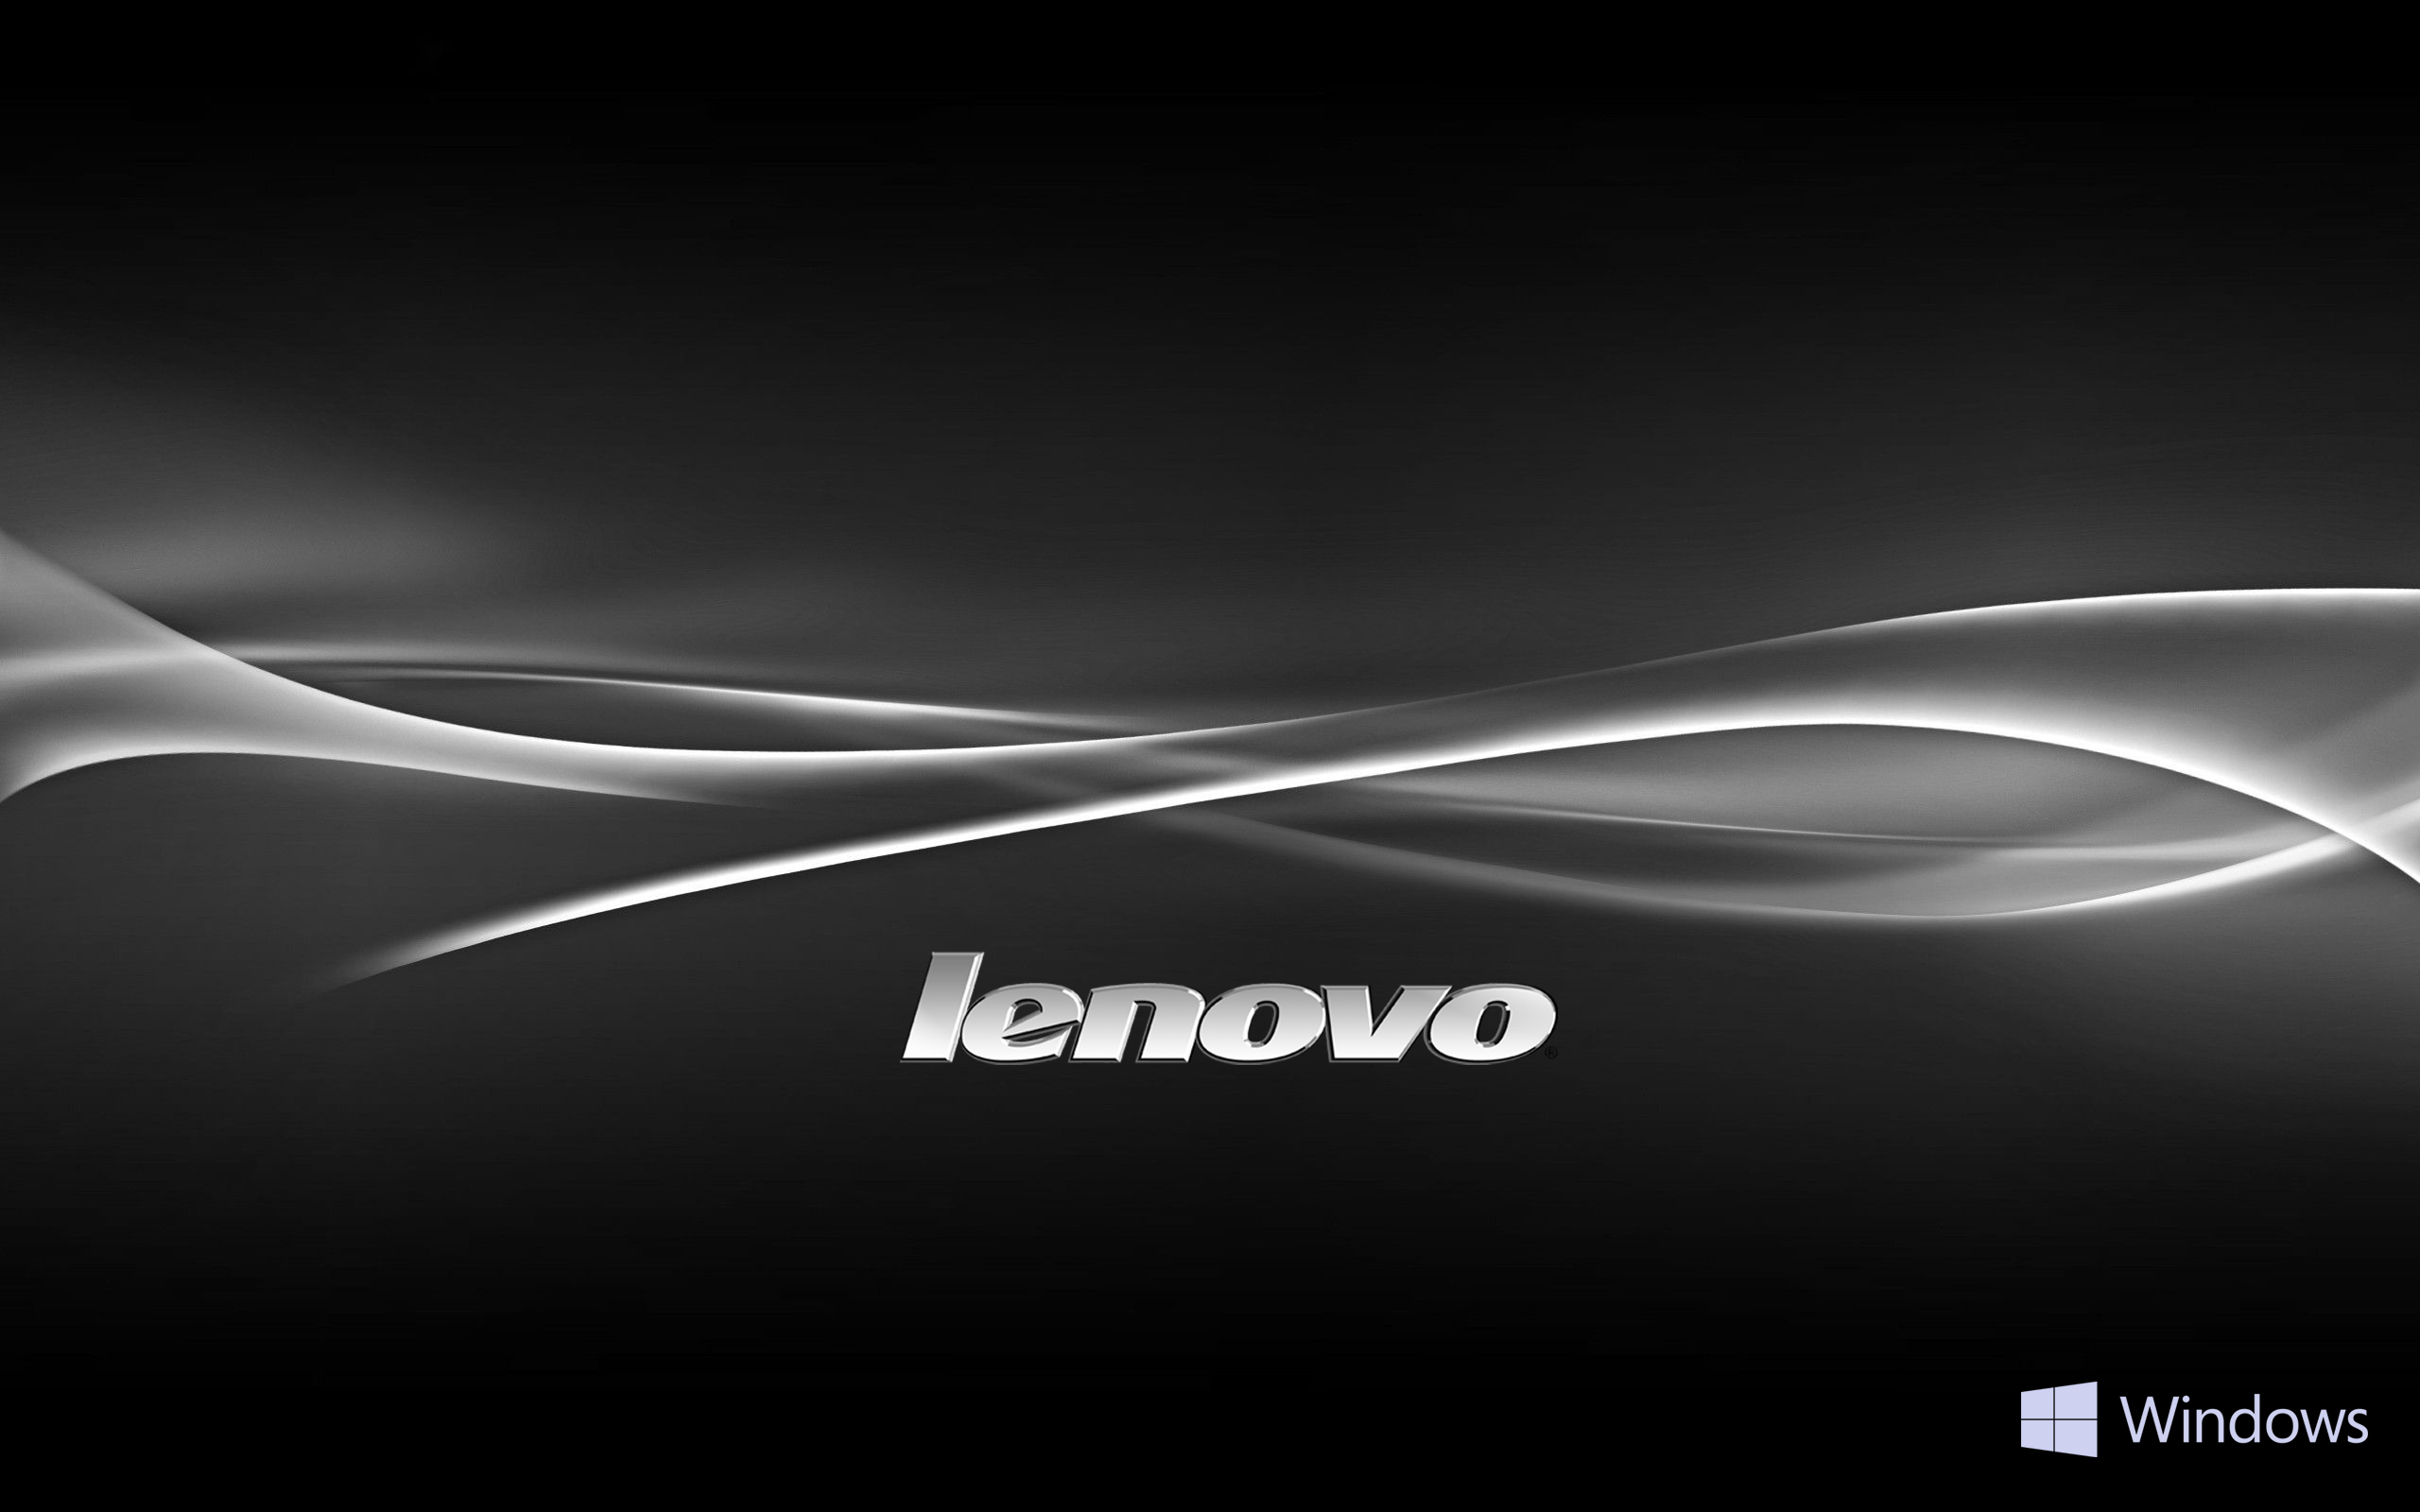 Windows 10 oem wallpaper for lenovo hd wallpapers wallpapers download high resolution - New lenovo background ...